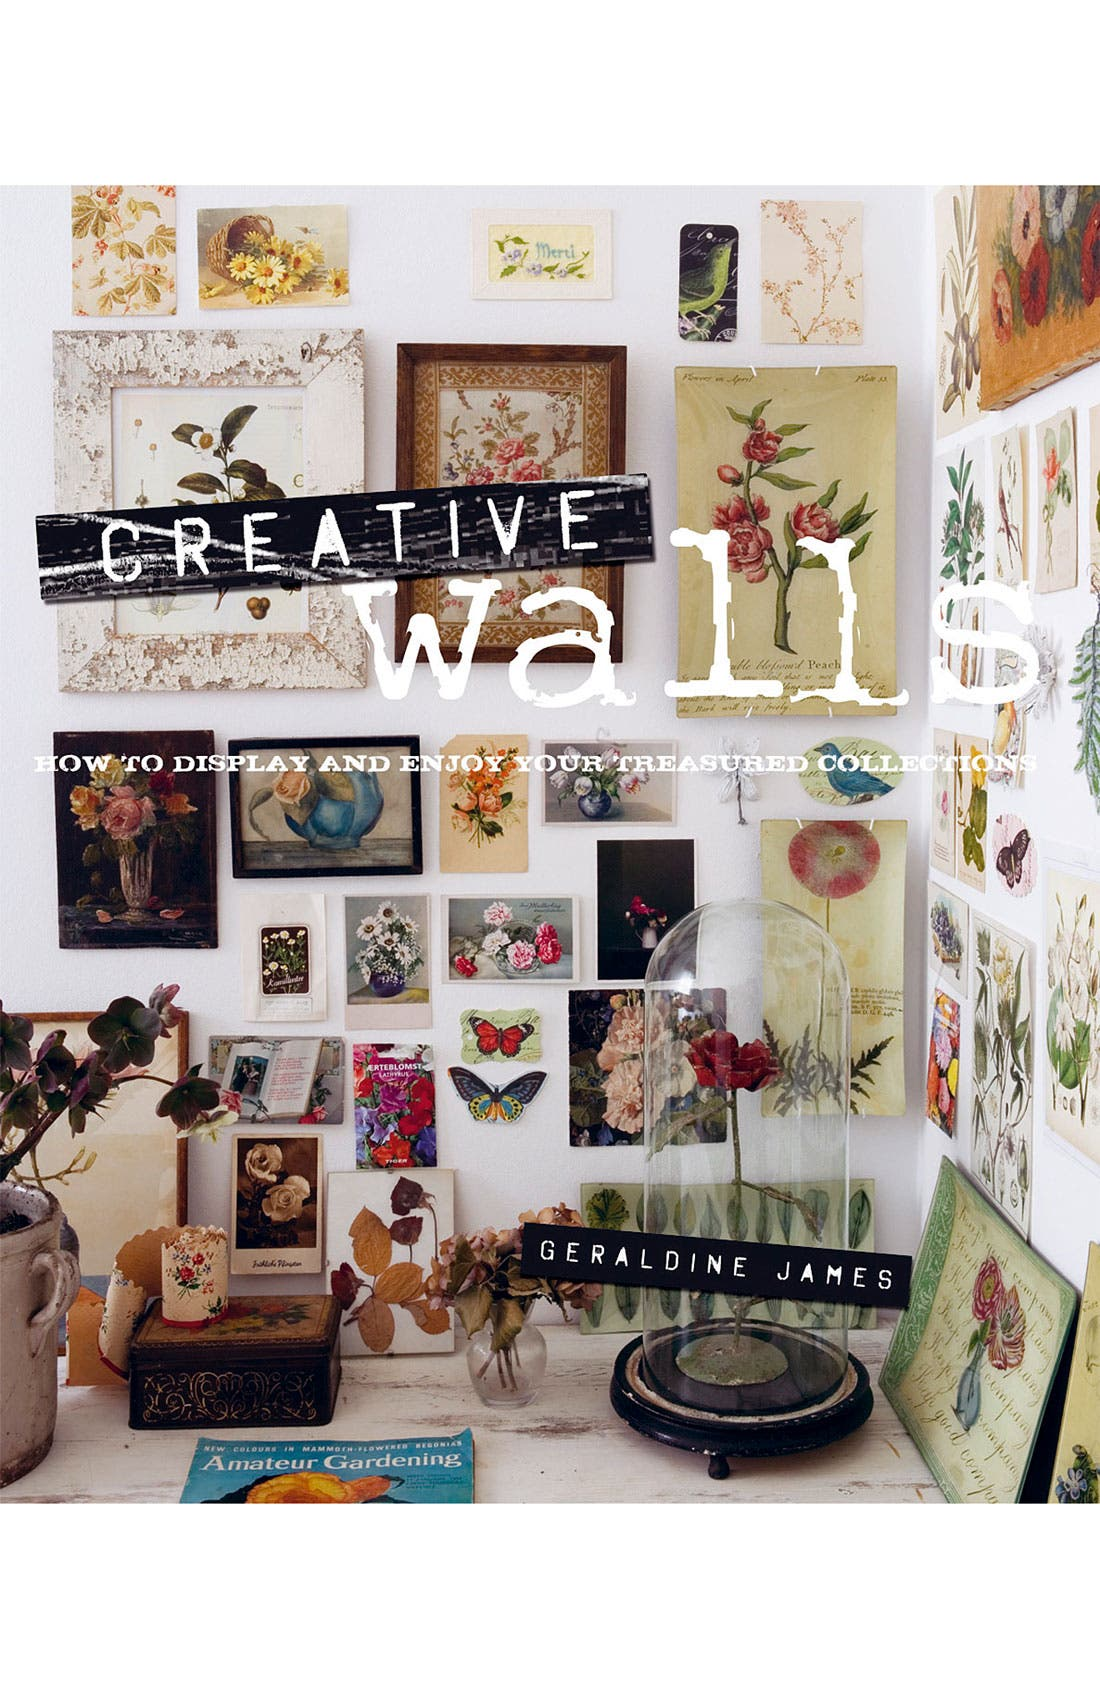 Alternate Image 1 Selected - Geraldine James 'Creative Walls' Interior Design Book